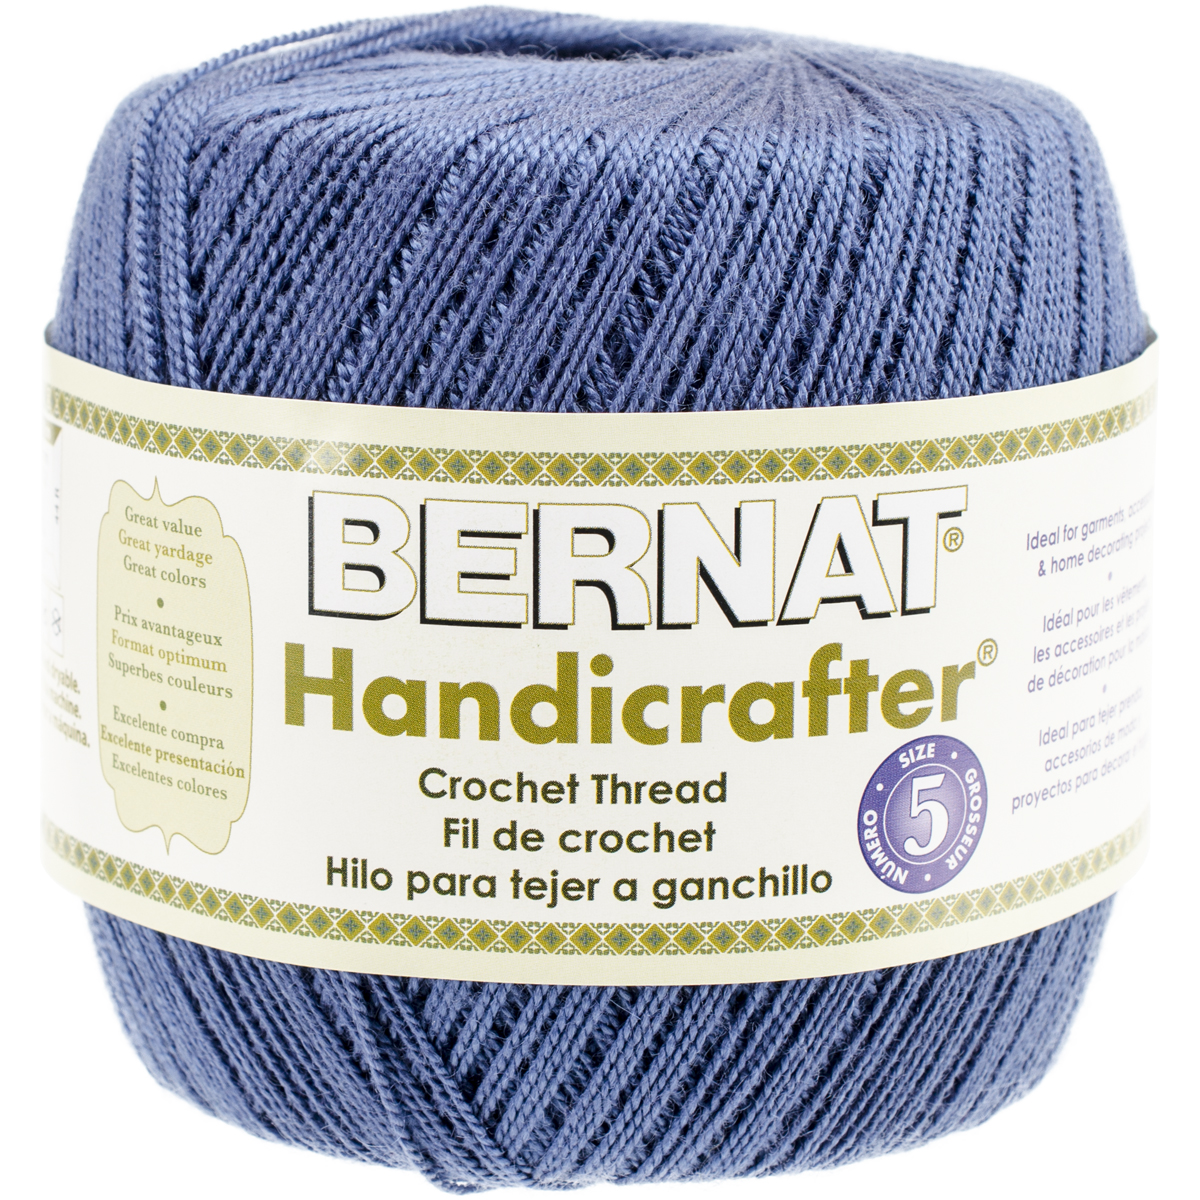 Handicrafter Crochet Thread Size 5 - Solids-Indigo Blue Multi-Colored